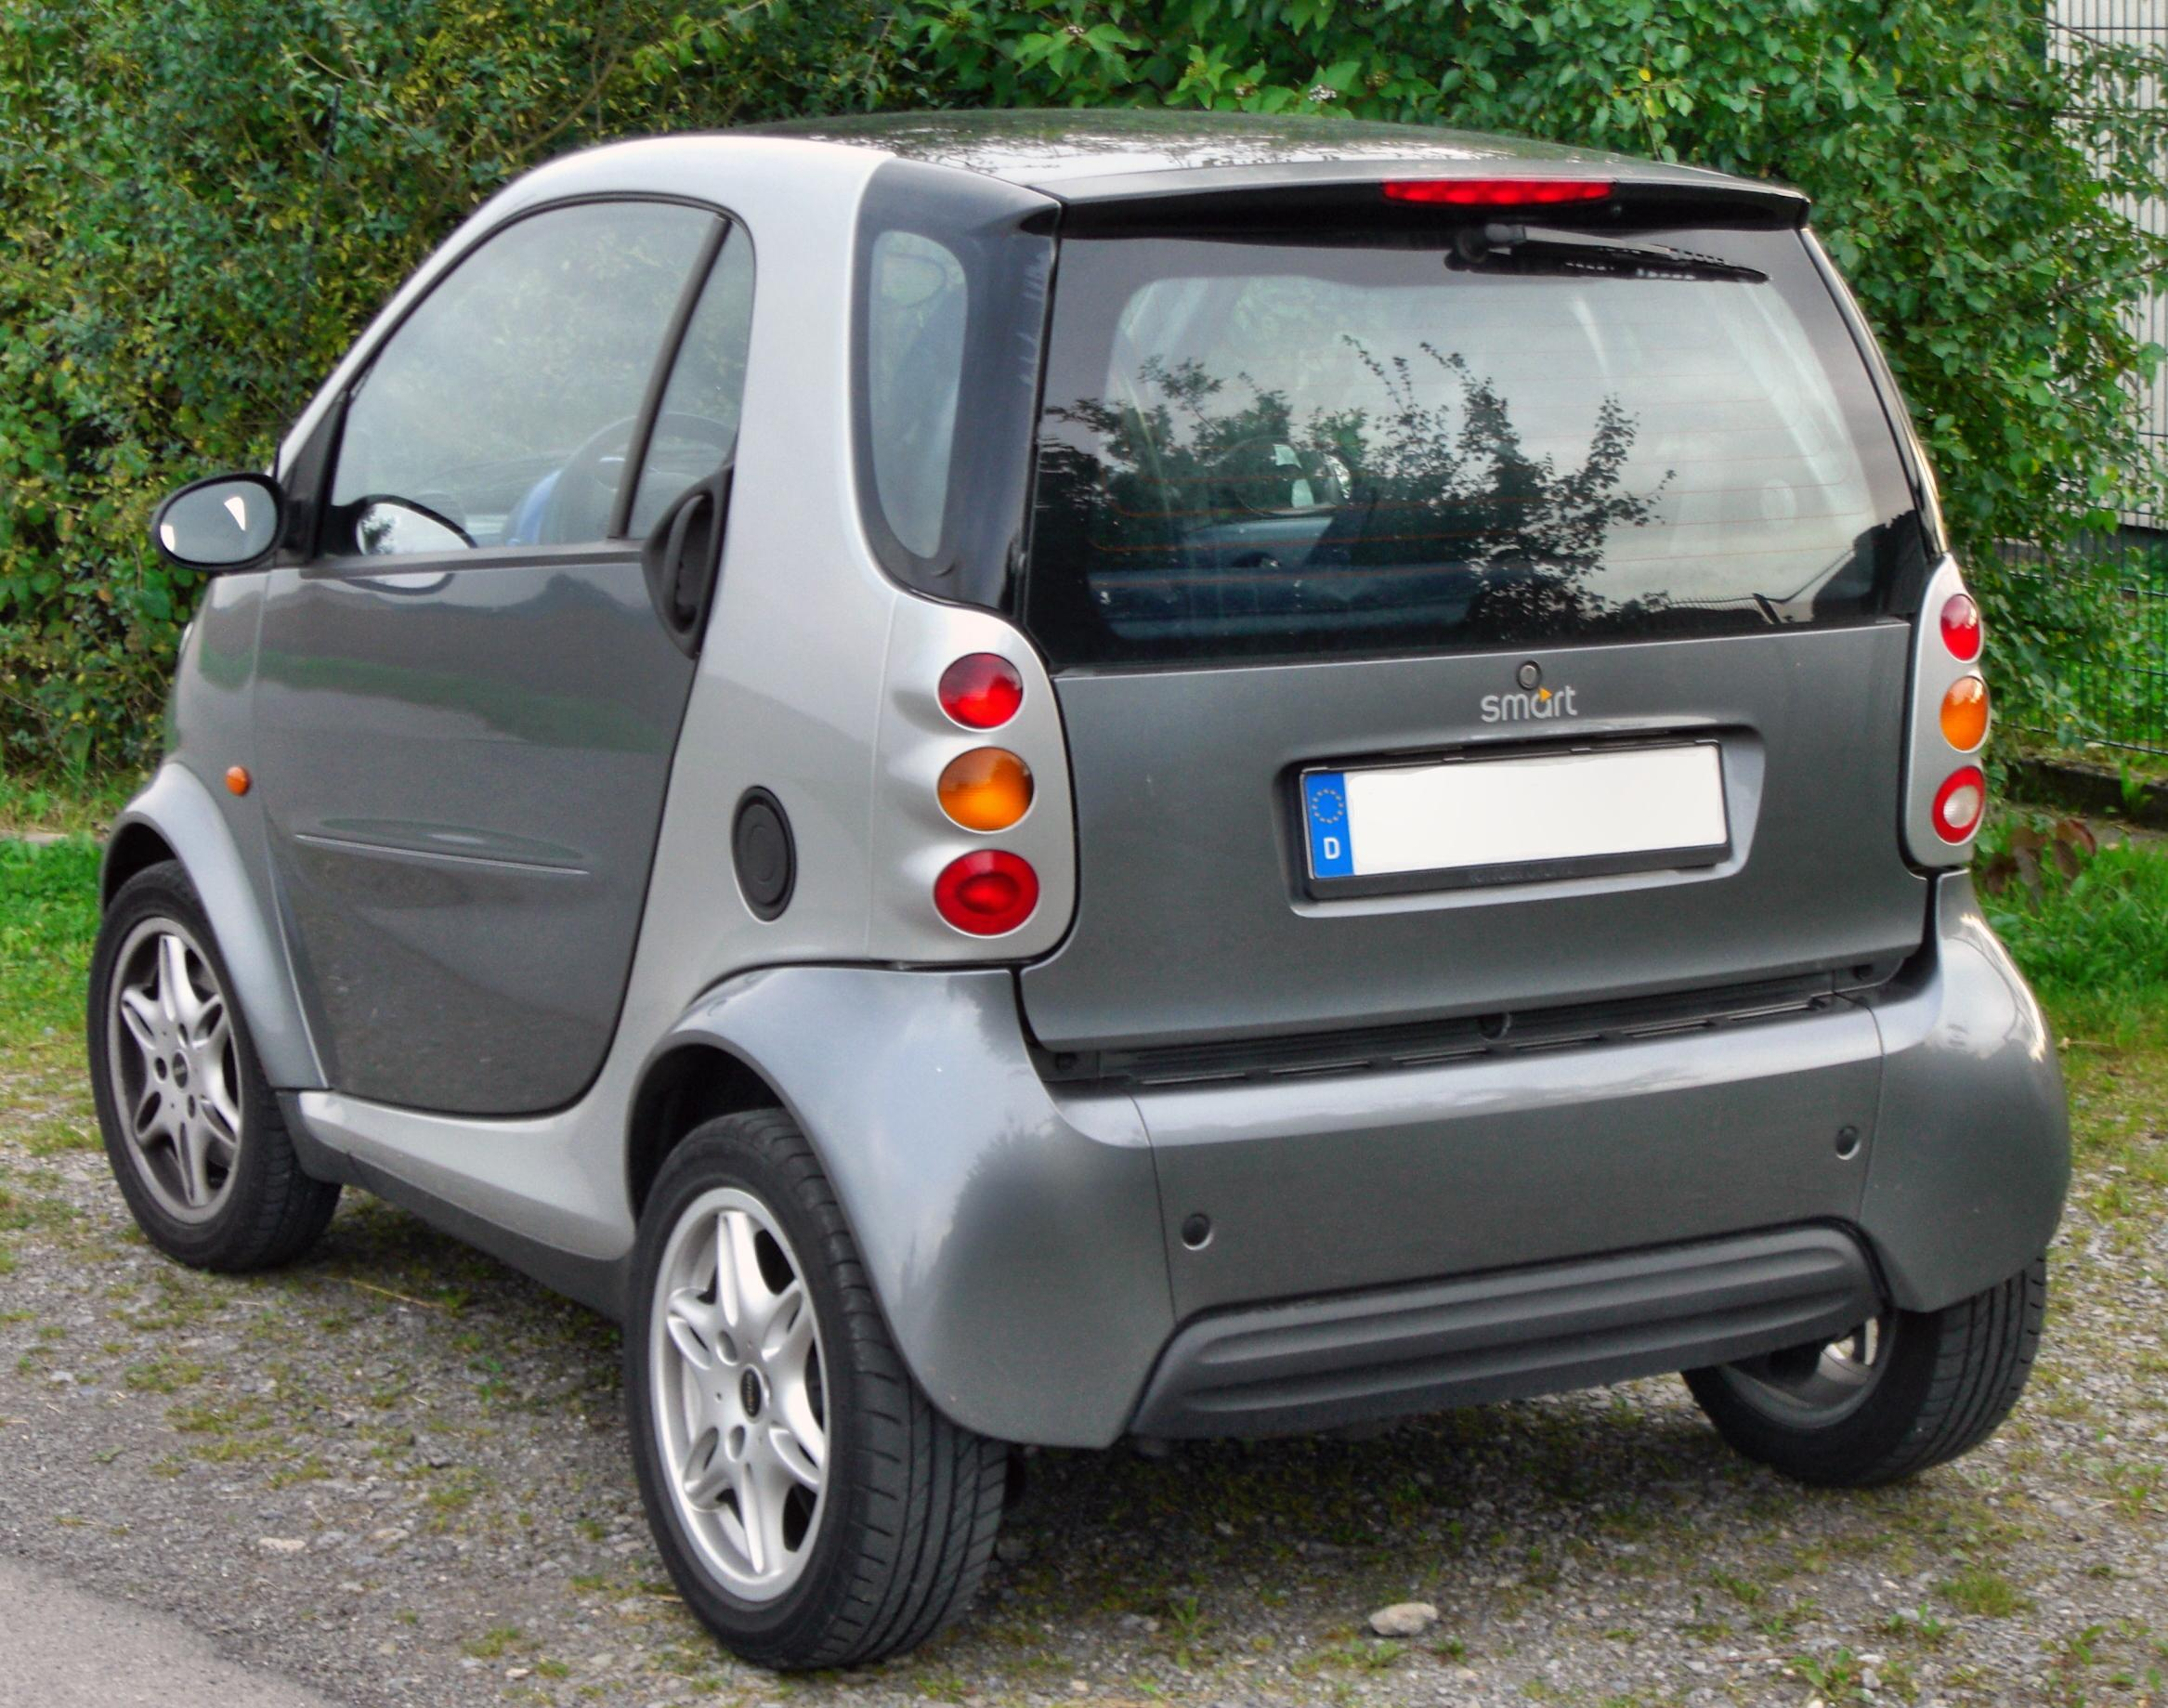 Schema Elettrico Smart 450 : File smart fortwo passion rear g wikimedia commons